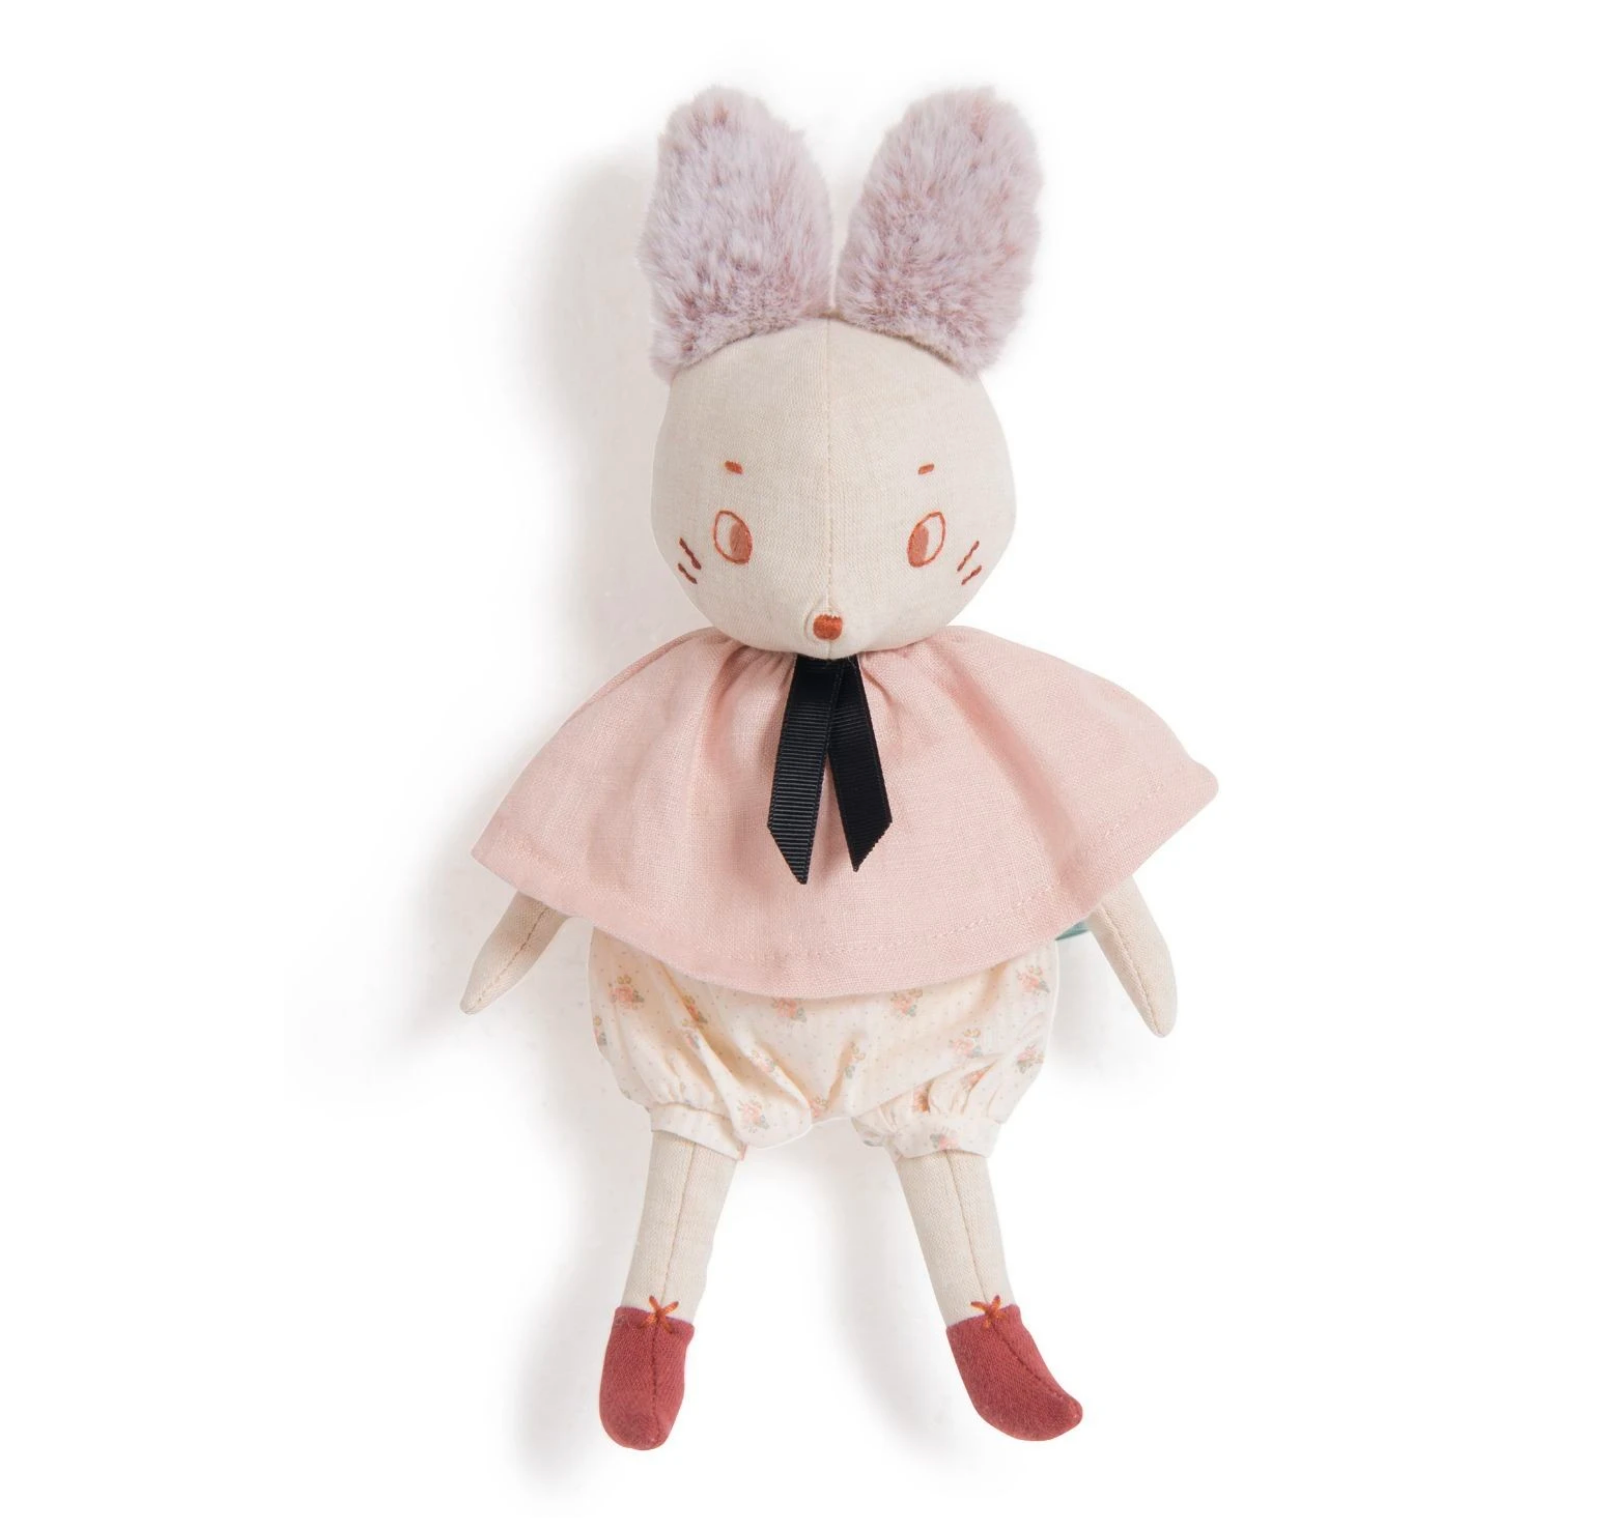 Apres la Pluie Brume the Rabbit-Mouse by Moulin Roty